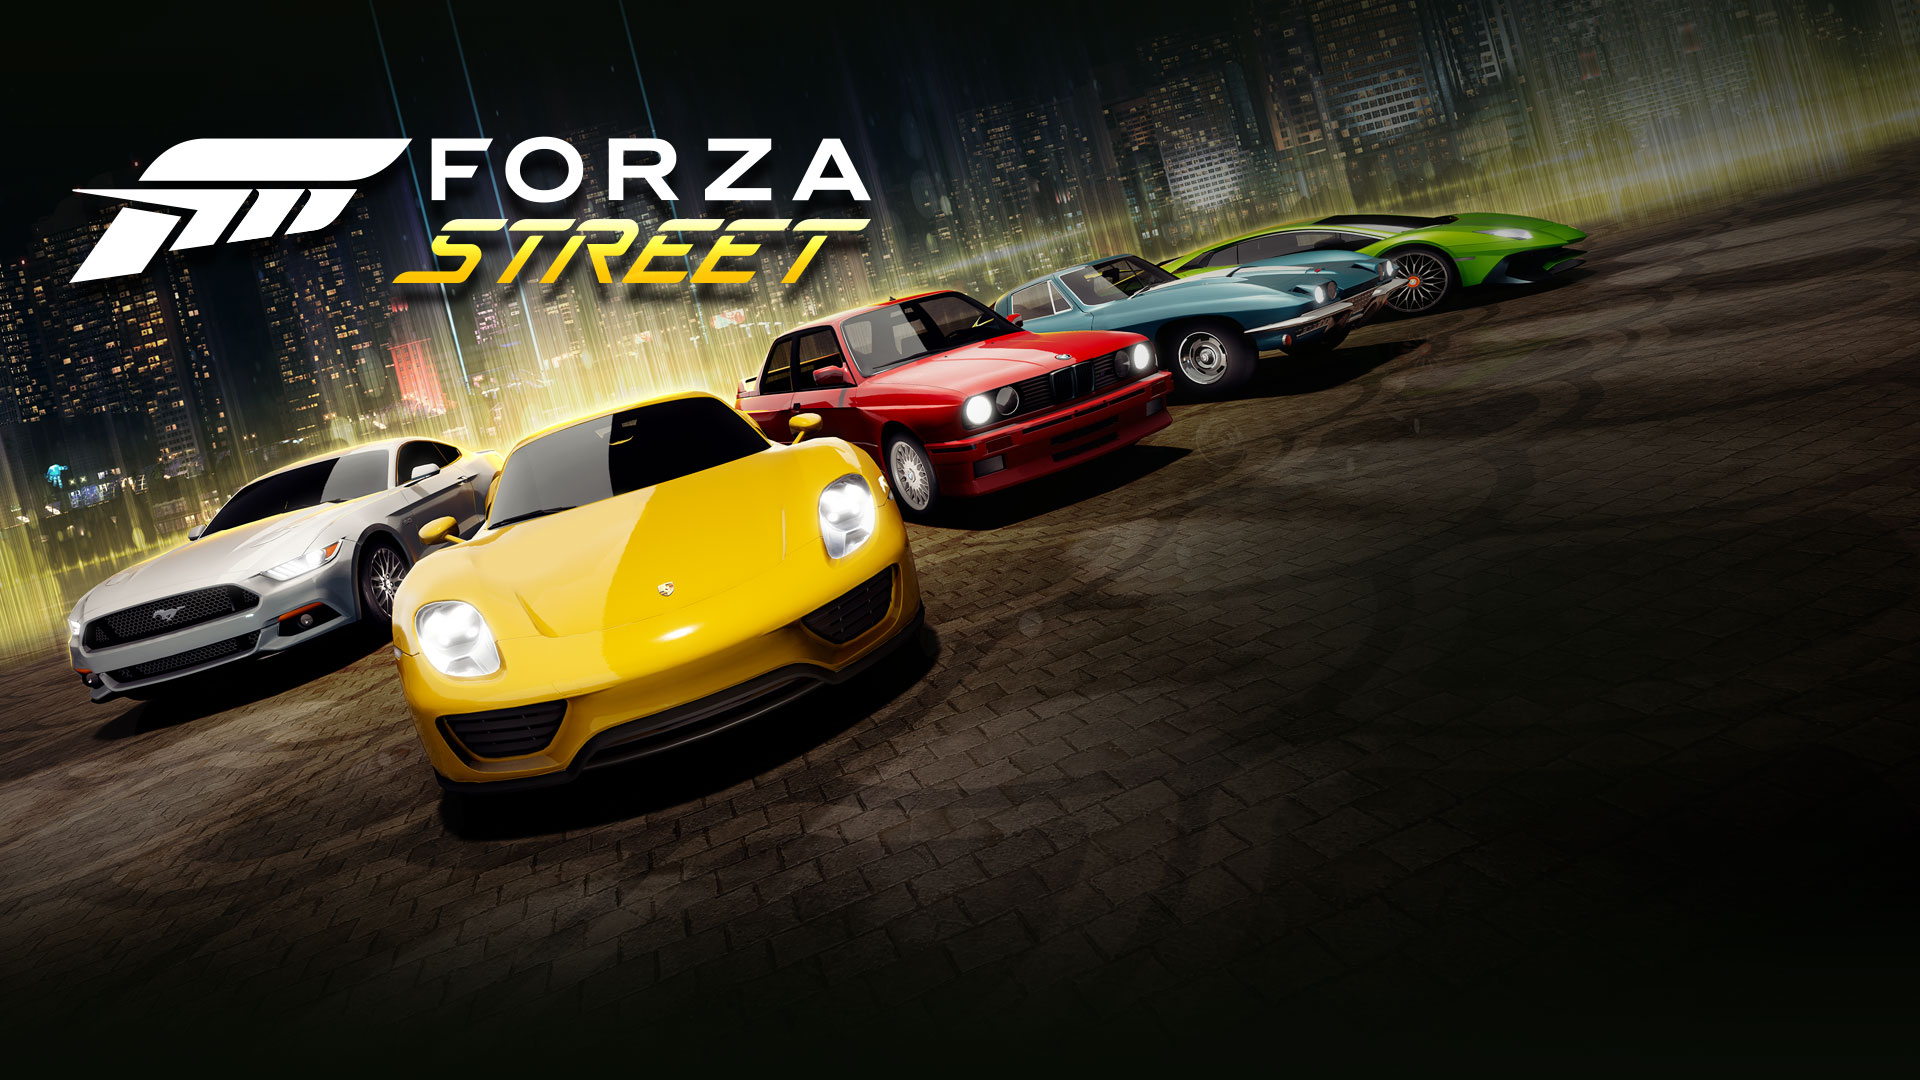 Forza Street For Windows 10 Xbox